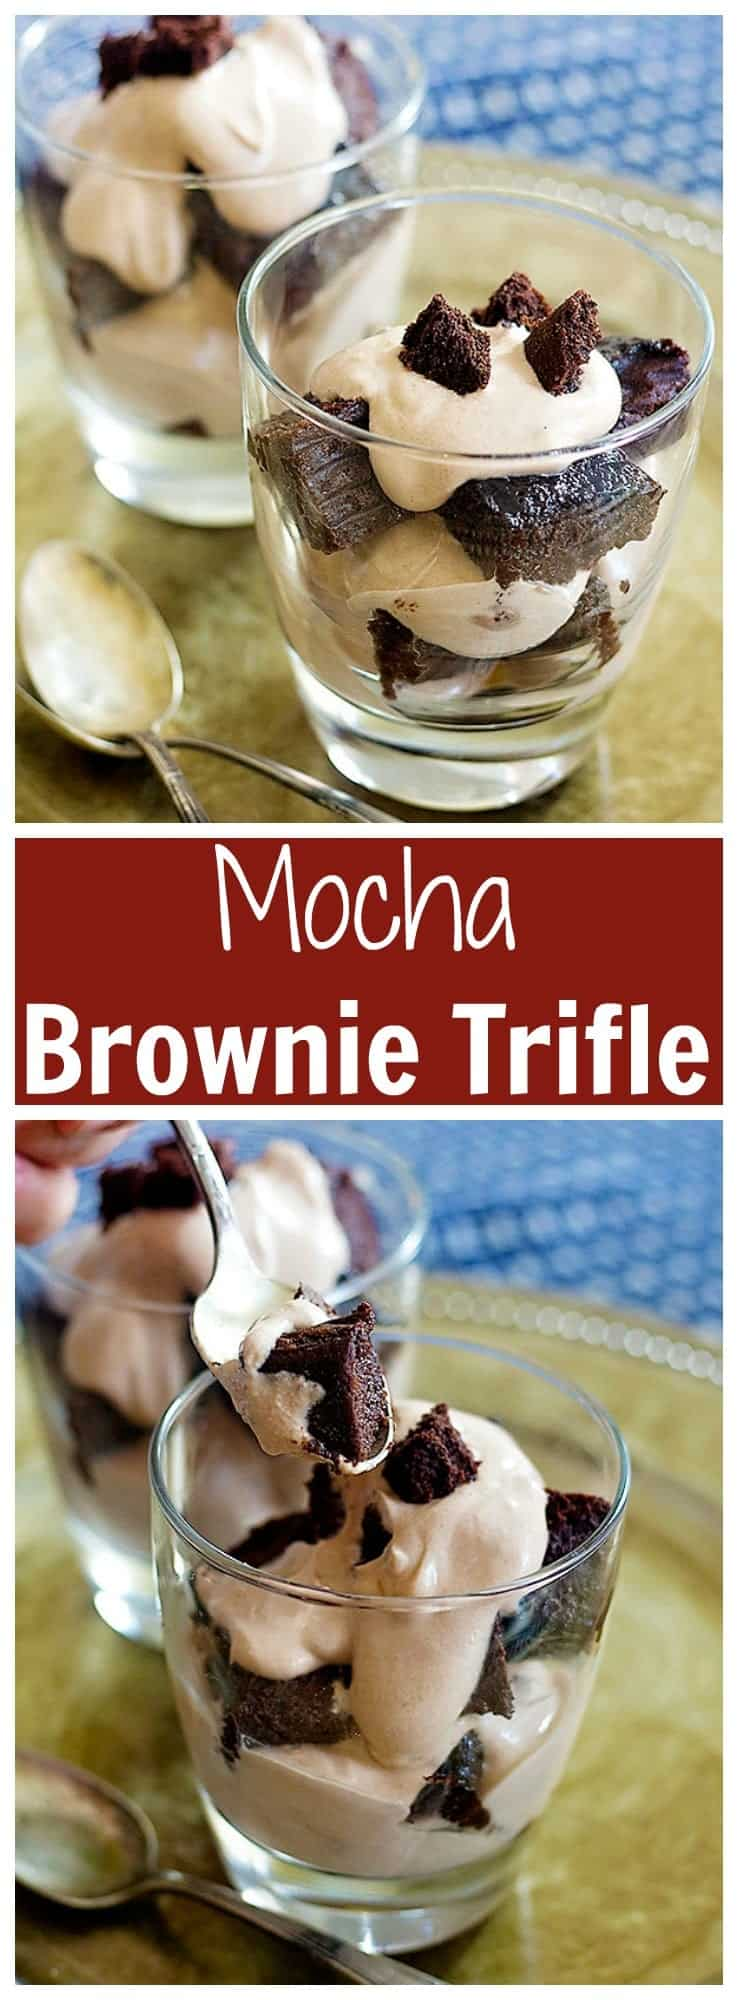 Mocha Brownie Trifle is a great choice for chocolate lovers! The combination of mocha and brownie layered with luscious mocha cream tastes perfect!